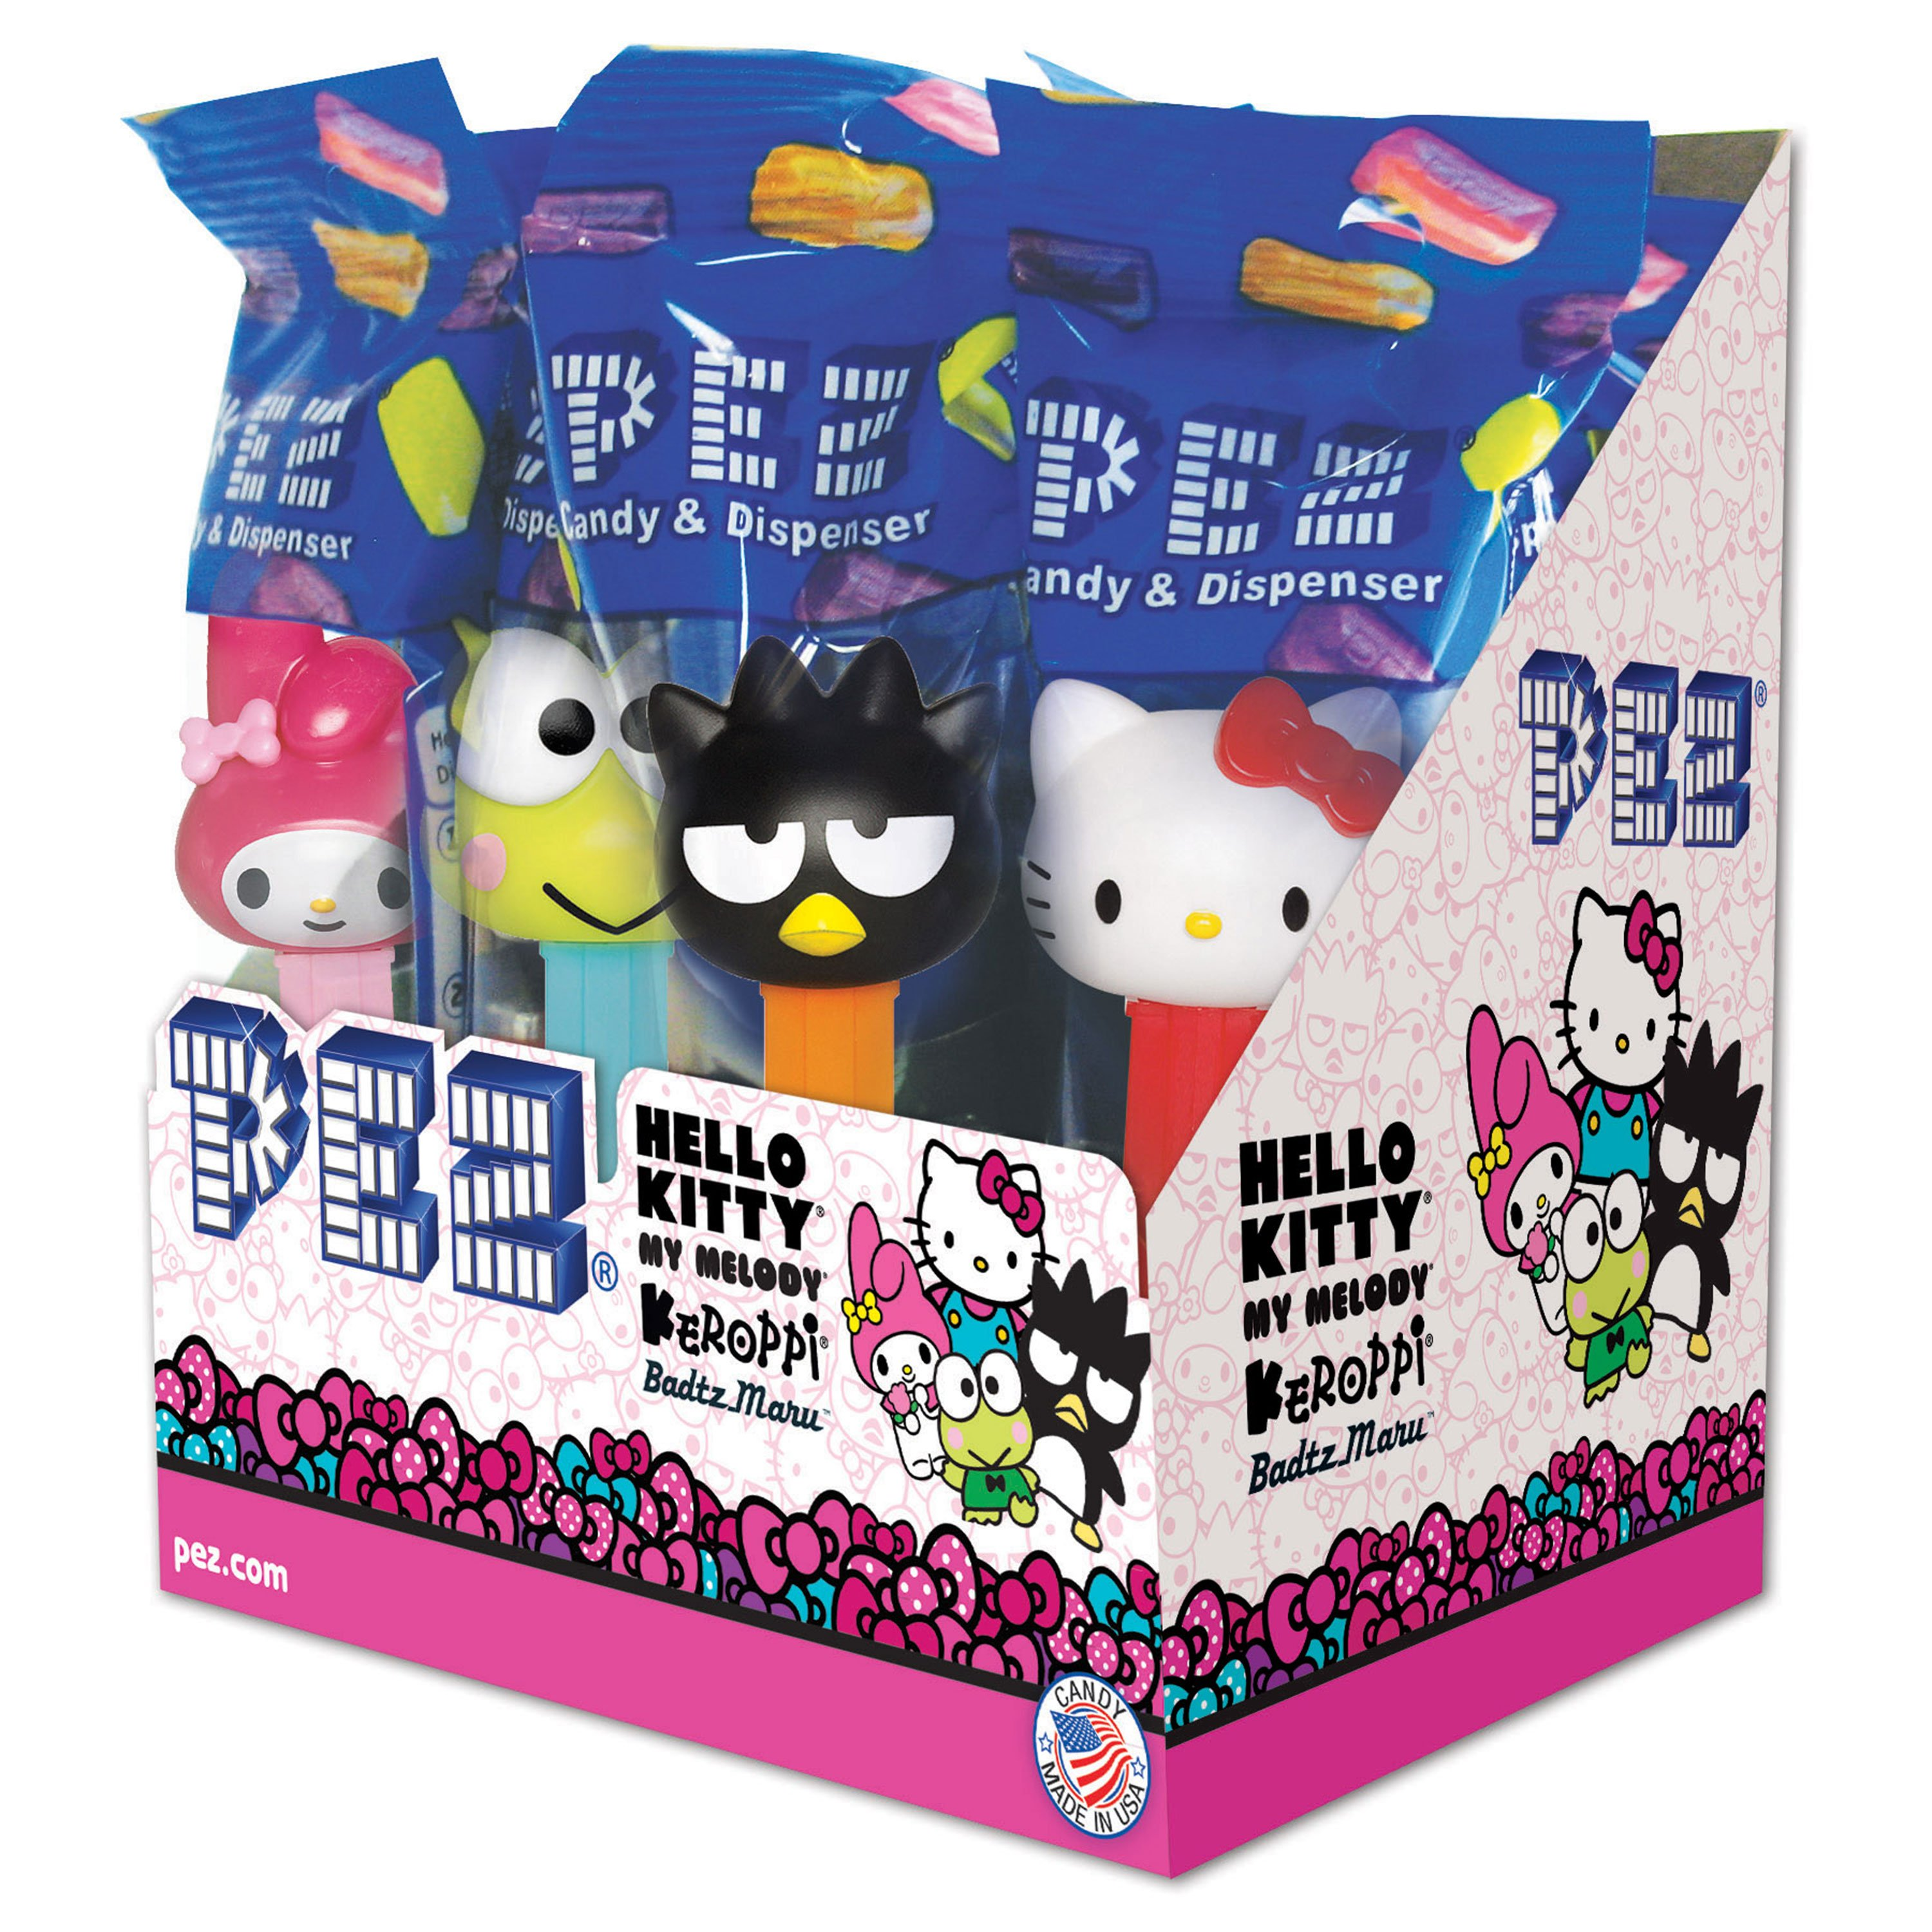 PEZ Candy Hello Kitty Assortment, candy dispenser plus 2 rolls of assorted fruit candy, box of 12